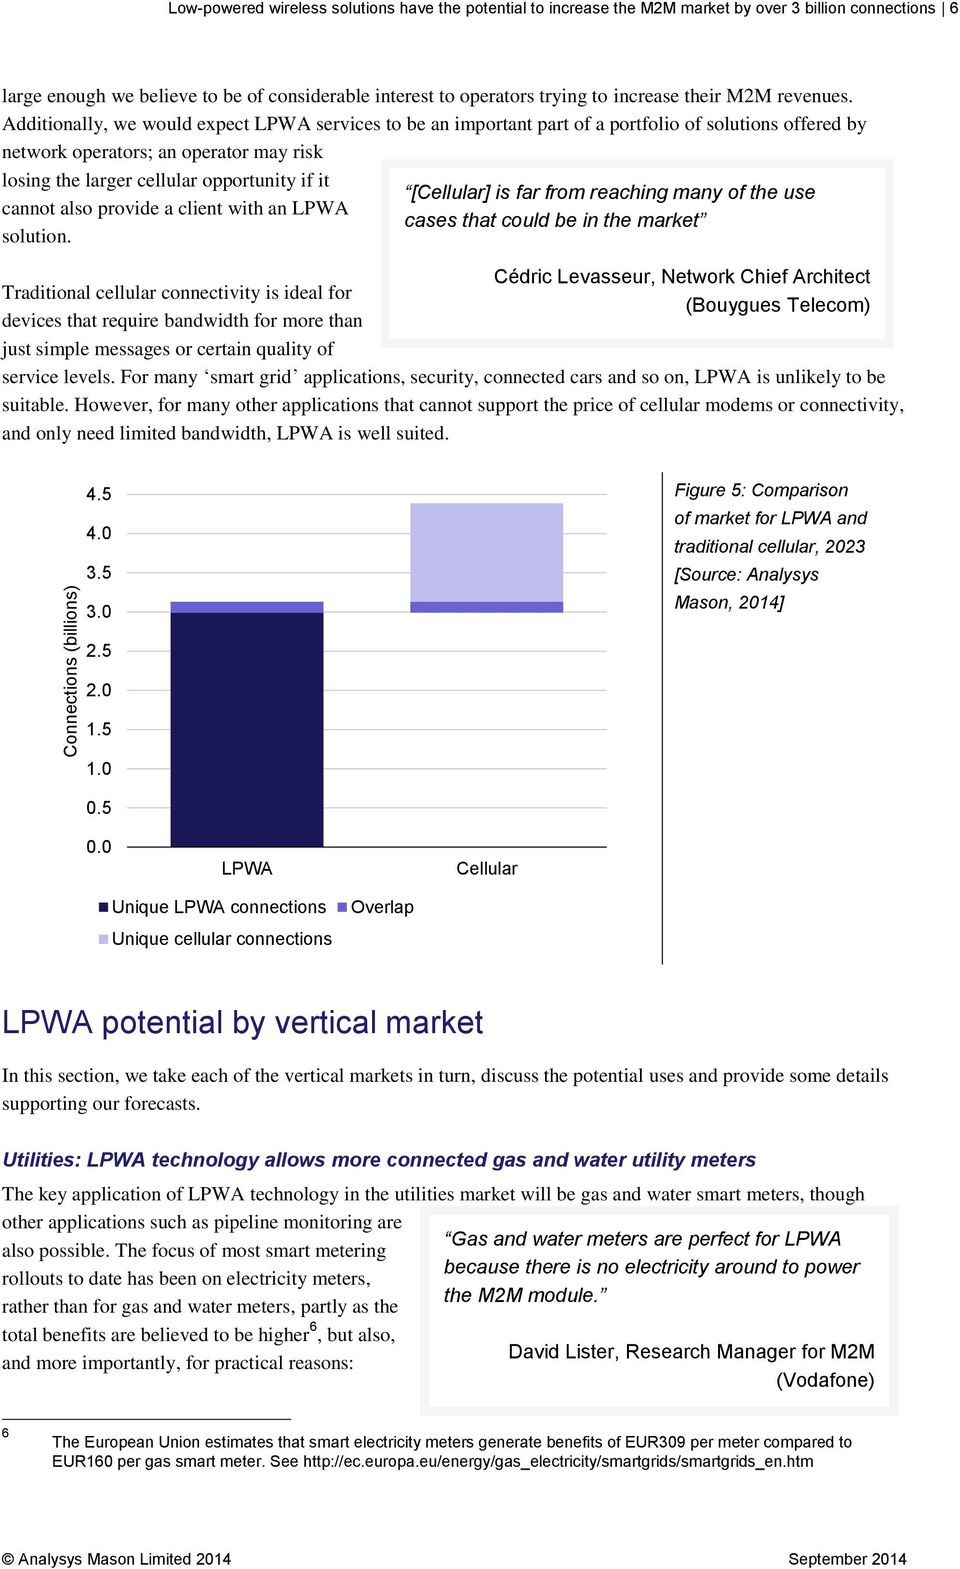 Additionally, we would expect LPWA services to be an important part of a portfolio of solutions offered by network operators; an operator may risk losing the larger cellular opportunity if it cannot